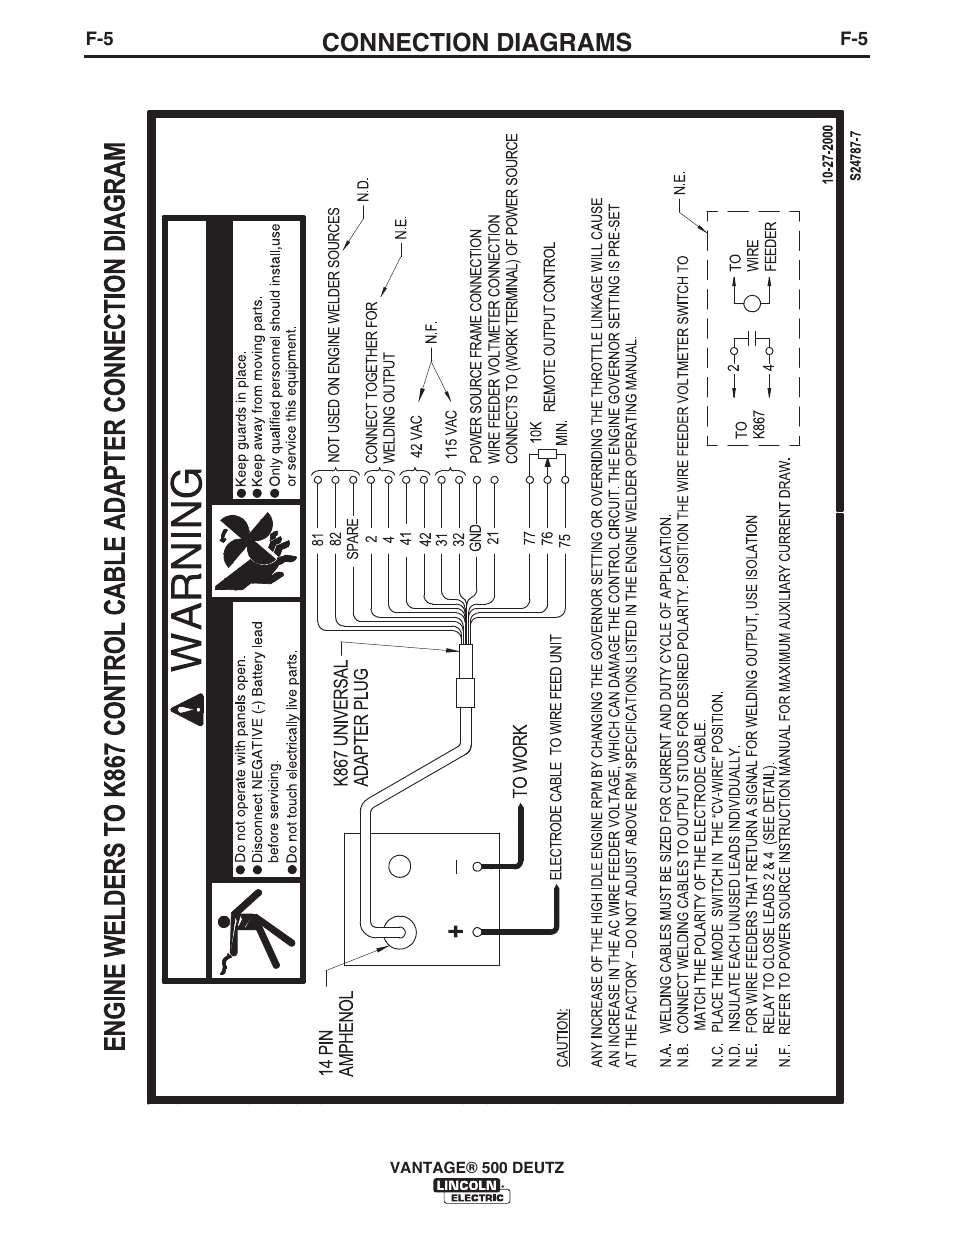 Deutz Engine Diagram Wiring Library Connection Diagrams Lincoln Electric Im954 Vantage 500 User Manual Page 41 53